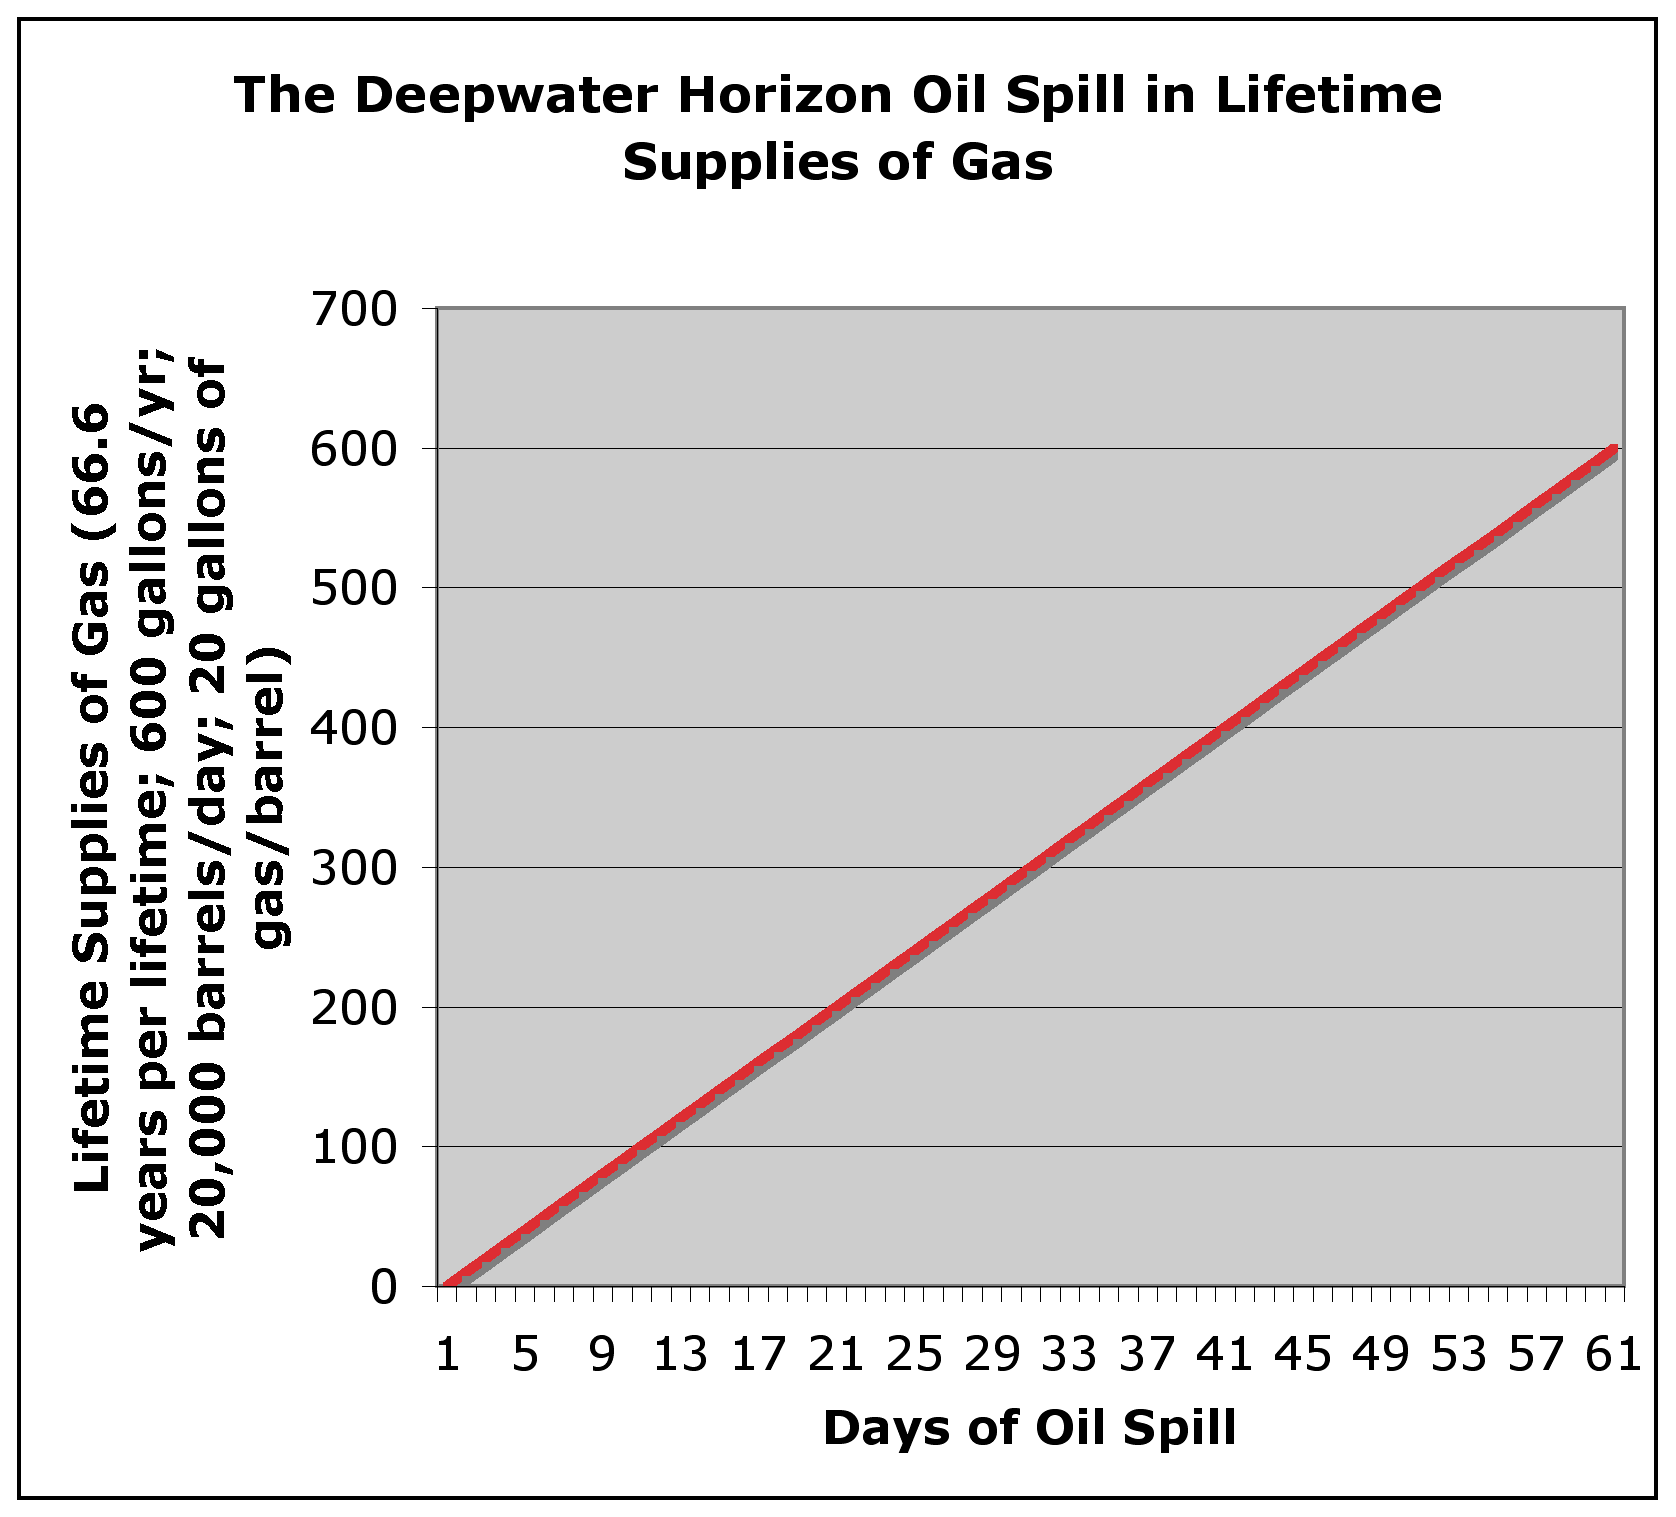 Chart of Oil Spill in Lifetime Supplies of Gas